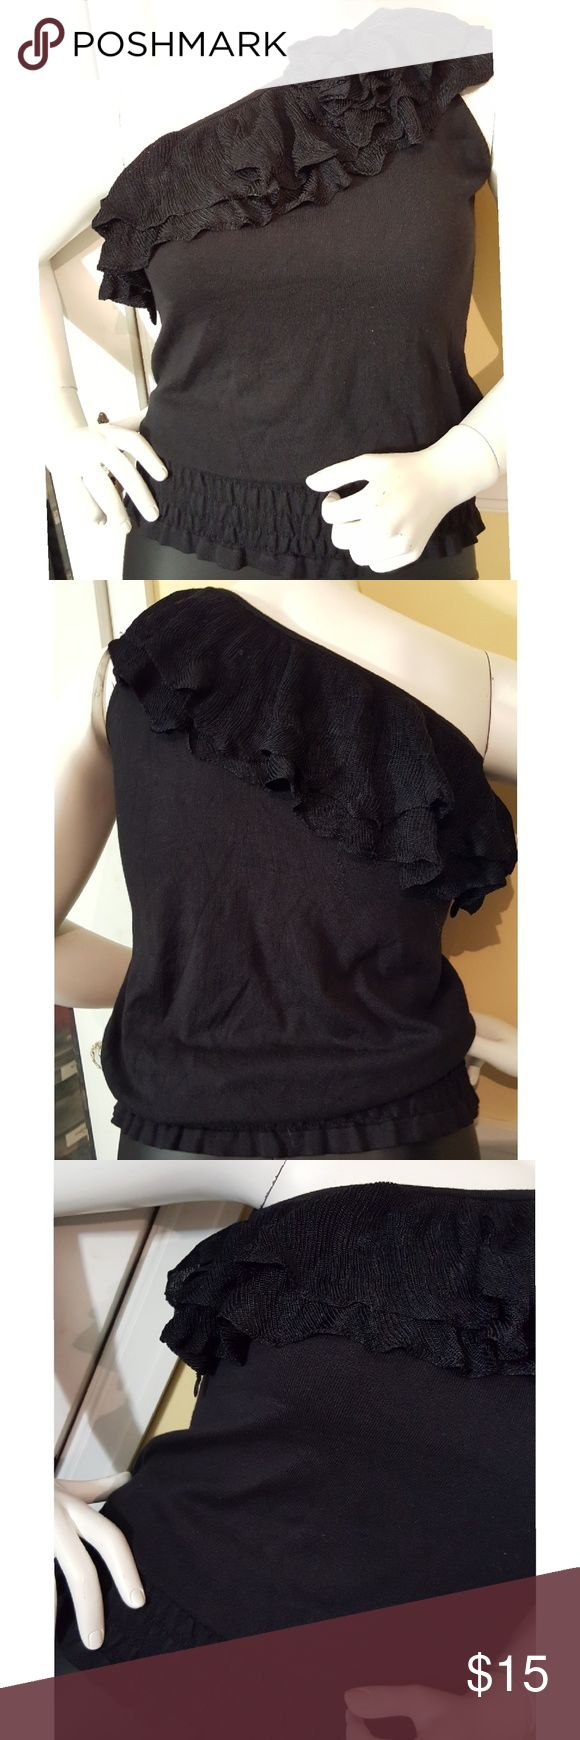 One shoulder ruffled shirt Black one shoulder ruffled shirt. Size Large. NWT. Charlotte Russe Tops